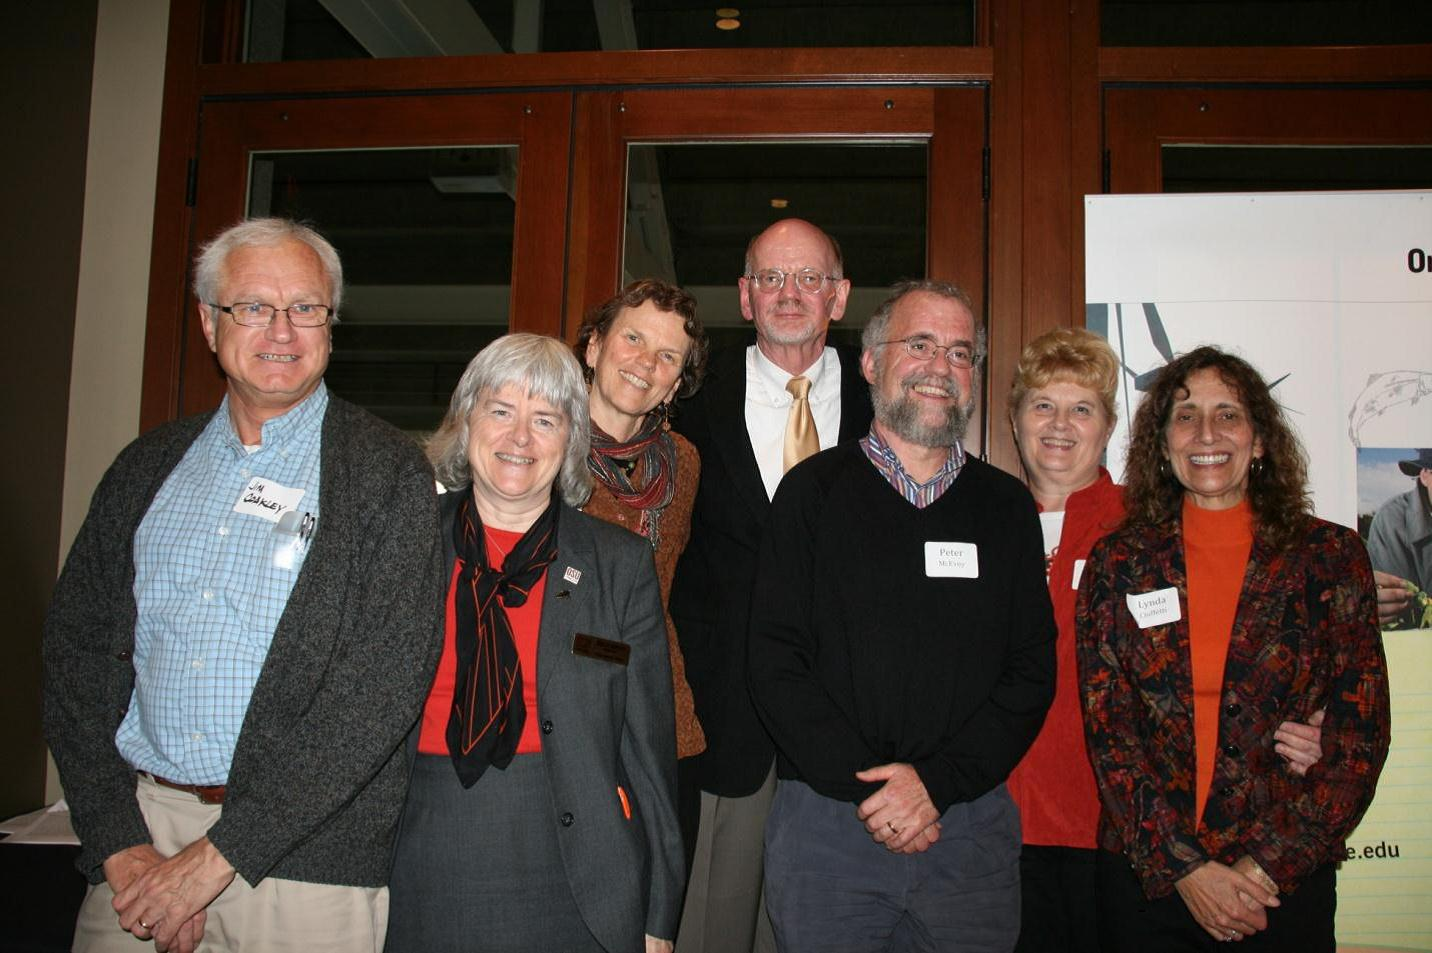 left to right Jim and Stella Coakley, Liz and Hiram Larew, Peter McEvoy, Dianne Simpson, Lynda Ciuffett